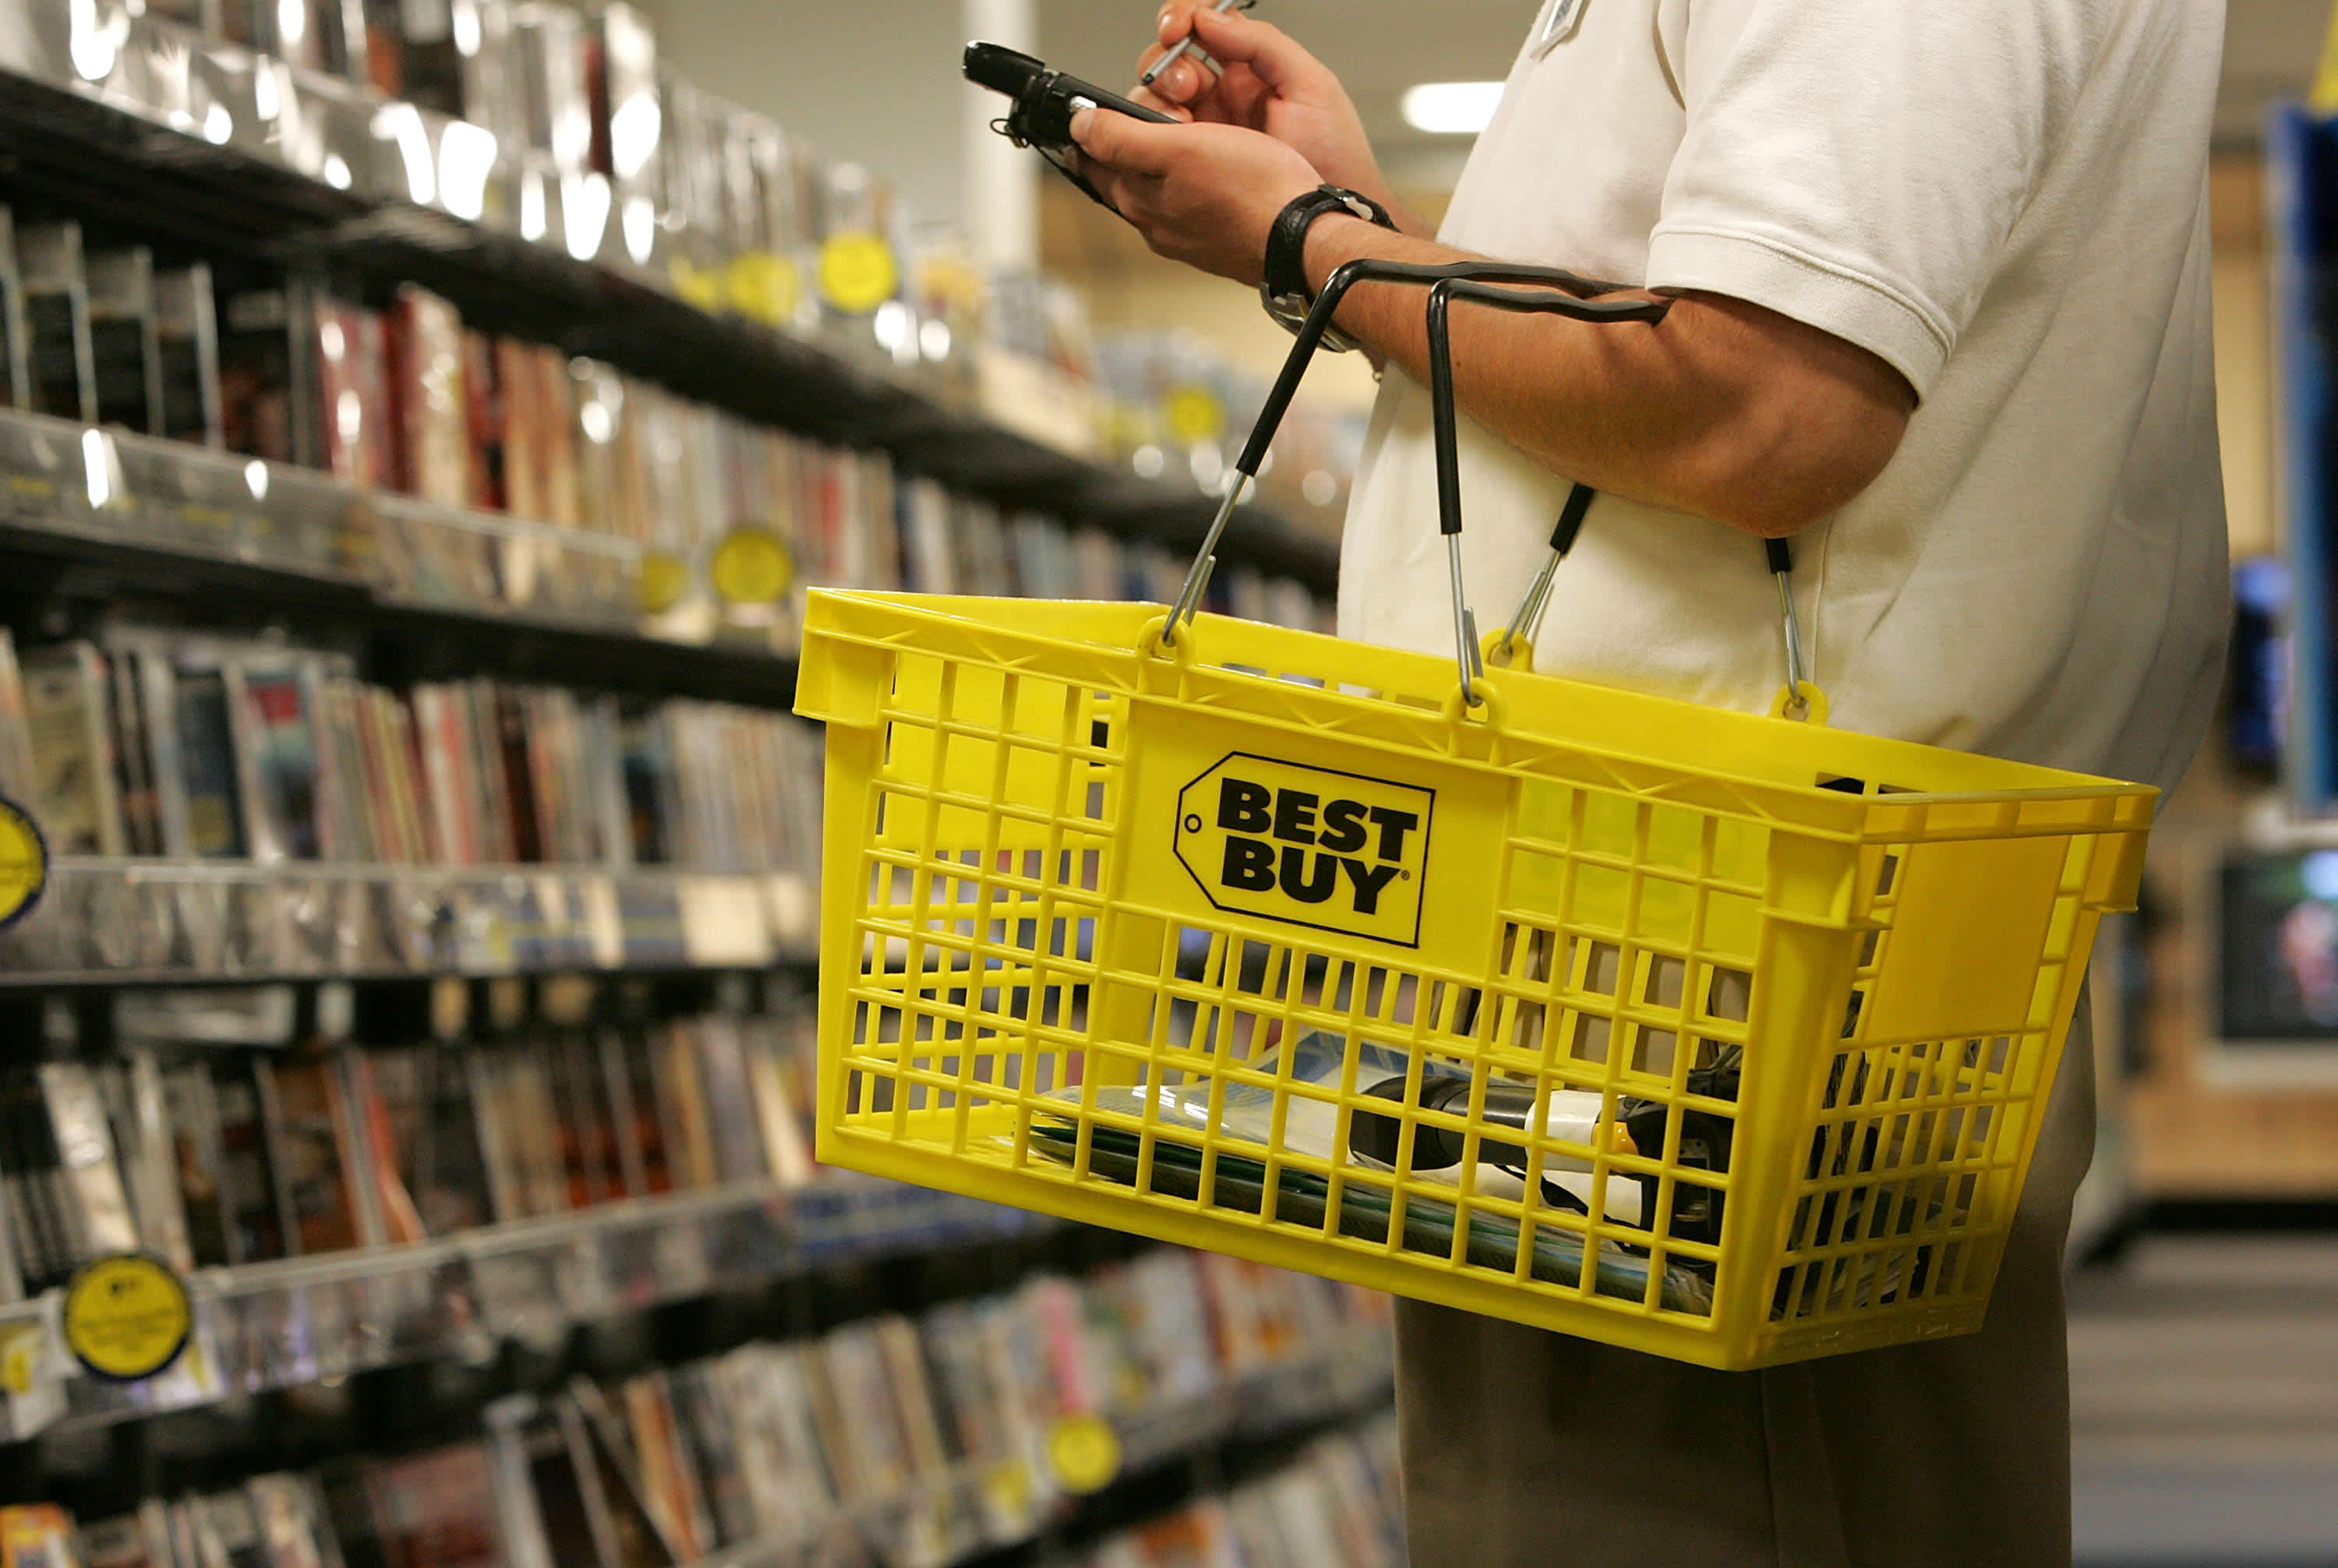 Best Buy earnings, housing data, consumer confidence: Three things to watch for in the markets Tuesday